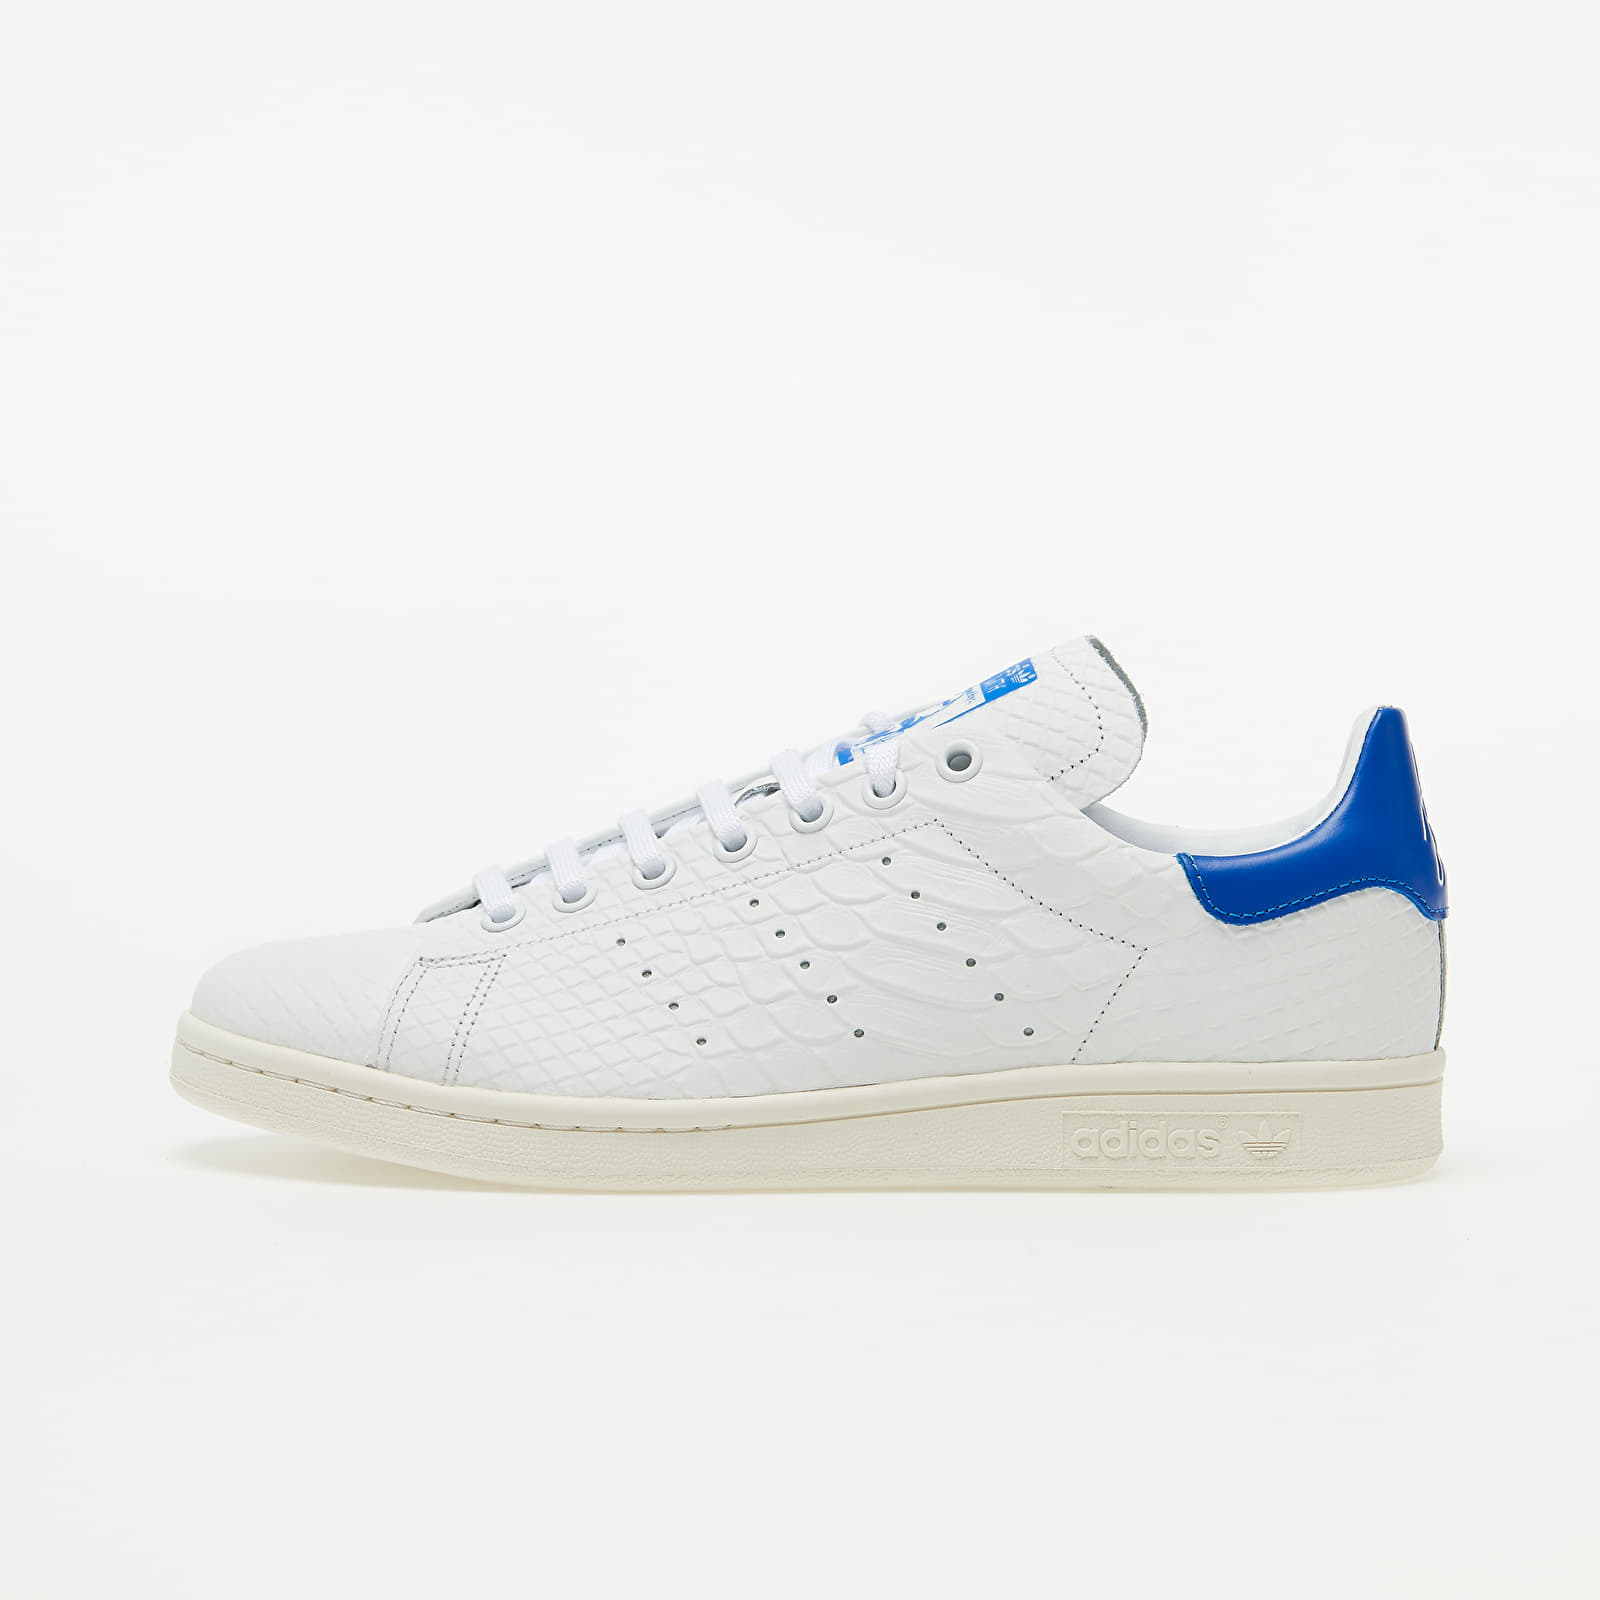 adidas Stan Smith Recon Ftw White/ Crystal White/ Off White EUR 44